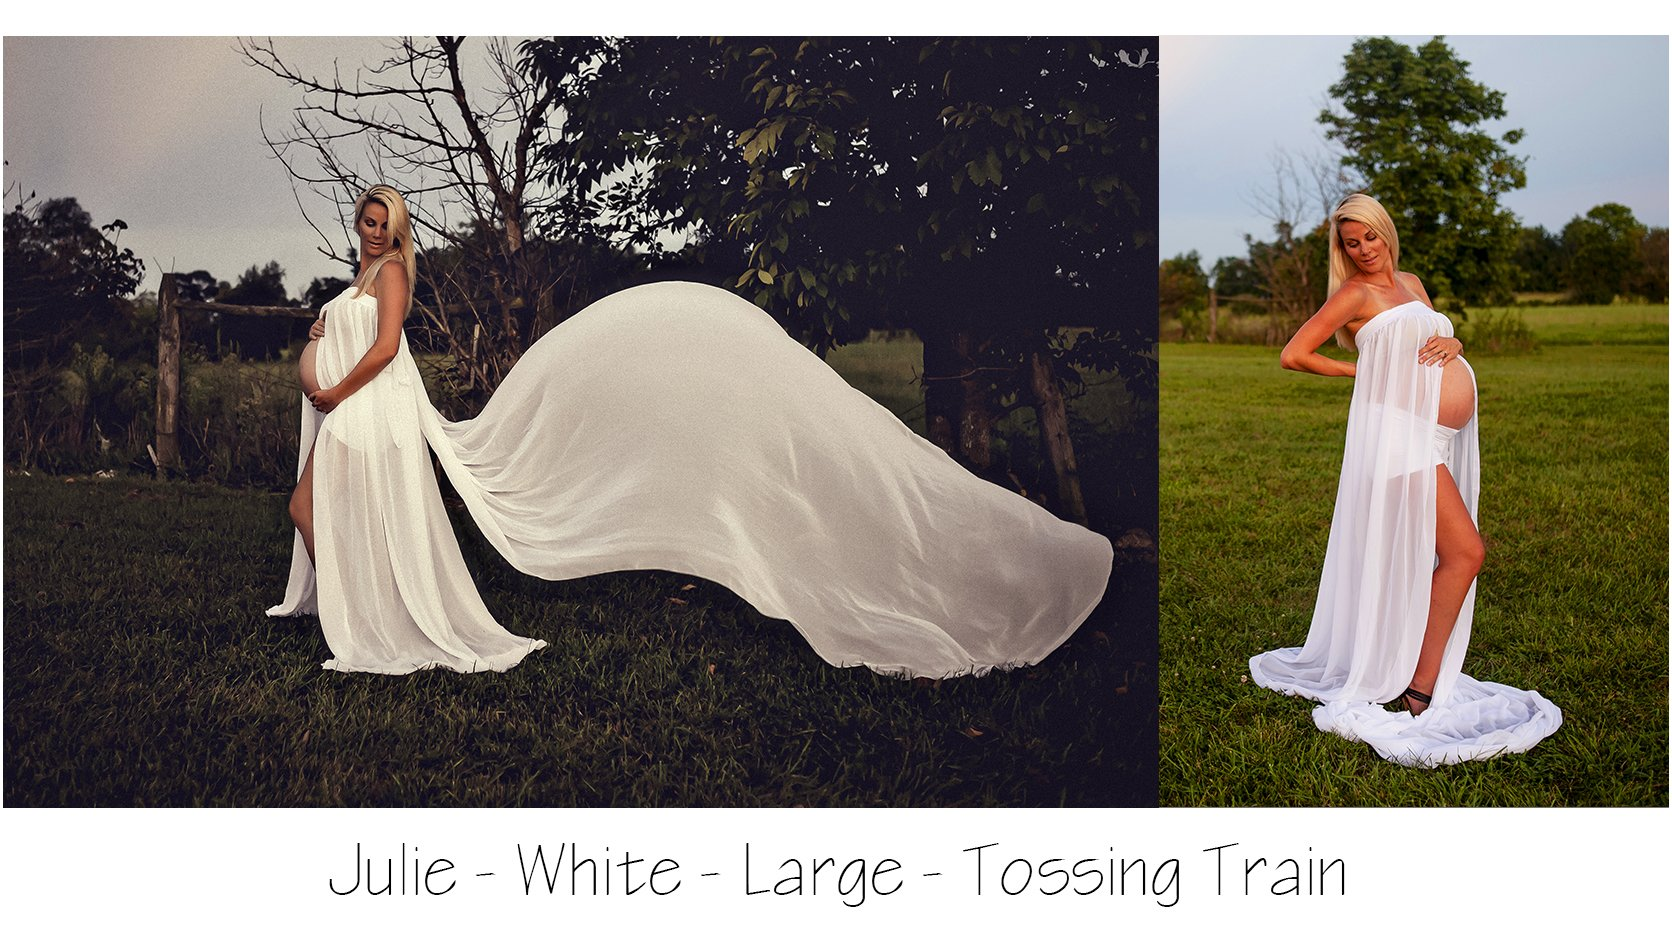 Maternity Photo Session: White Maternity Skirt with tossing train